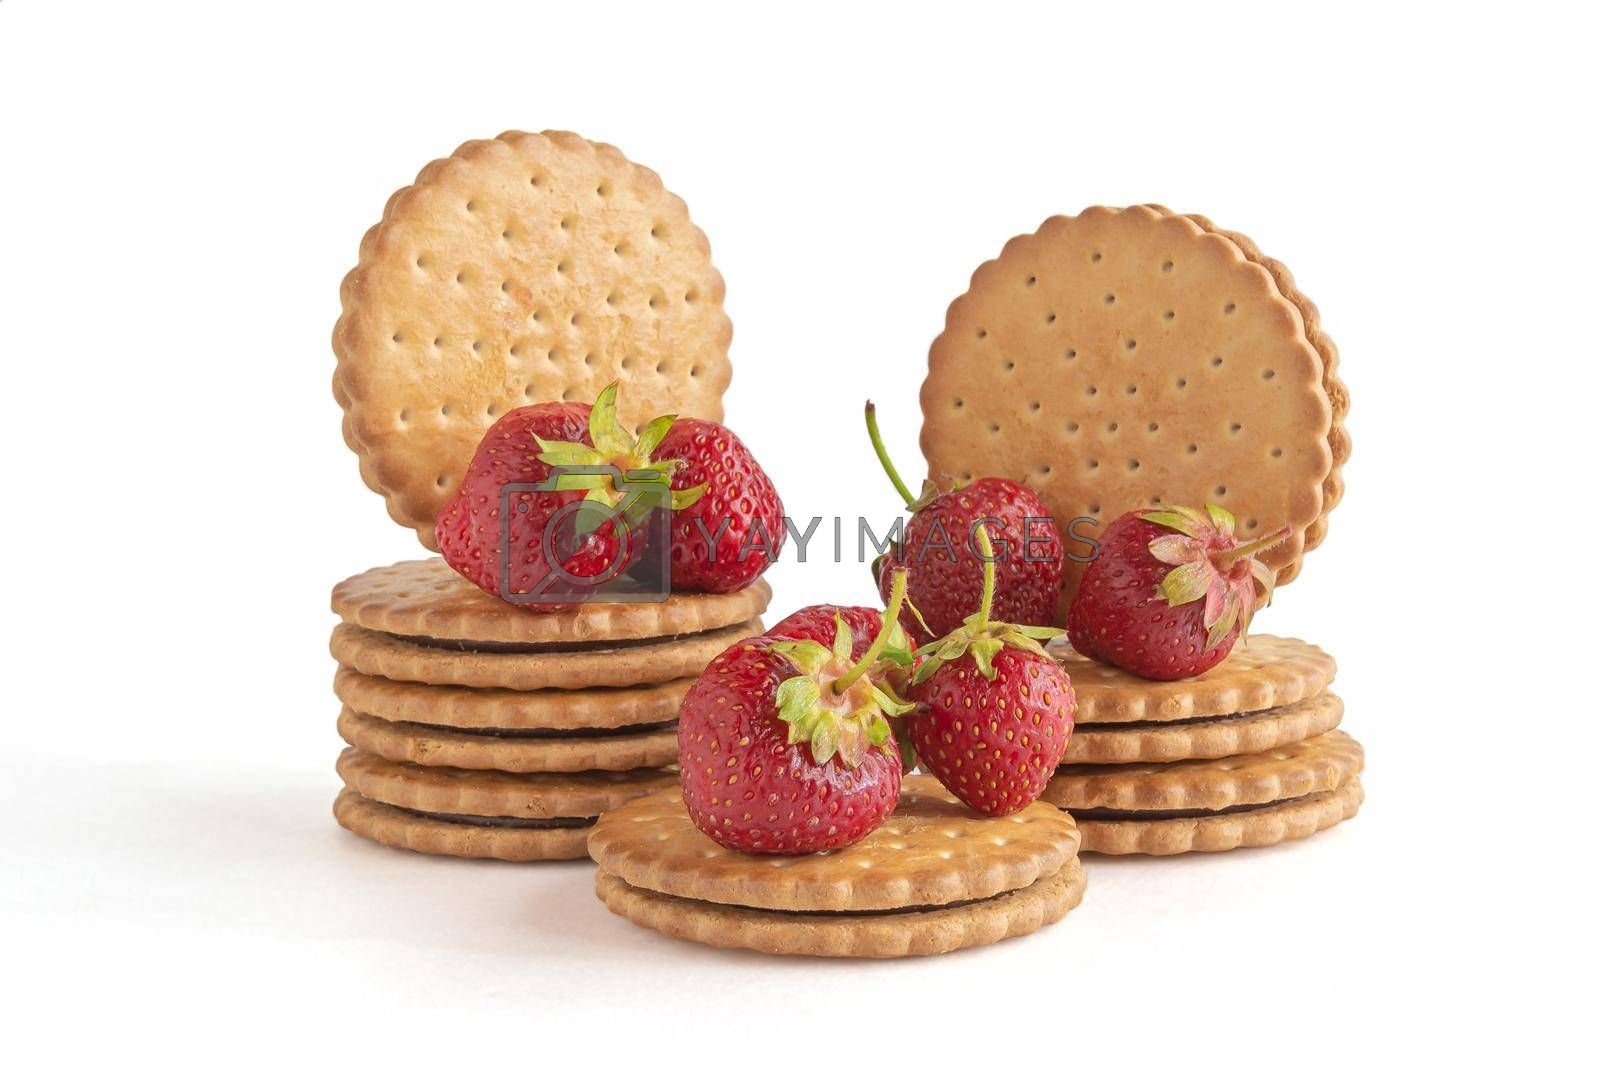 Cookies and berries of a ripe lover. Items isolated on white background. Stock photography.